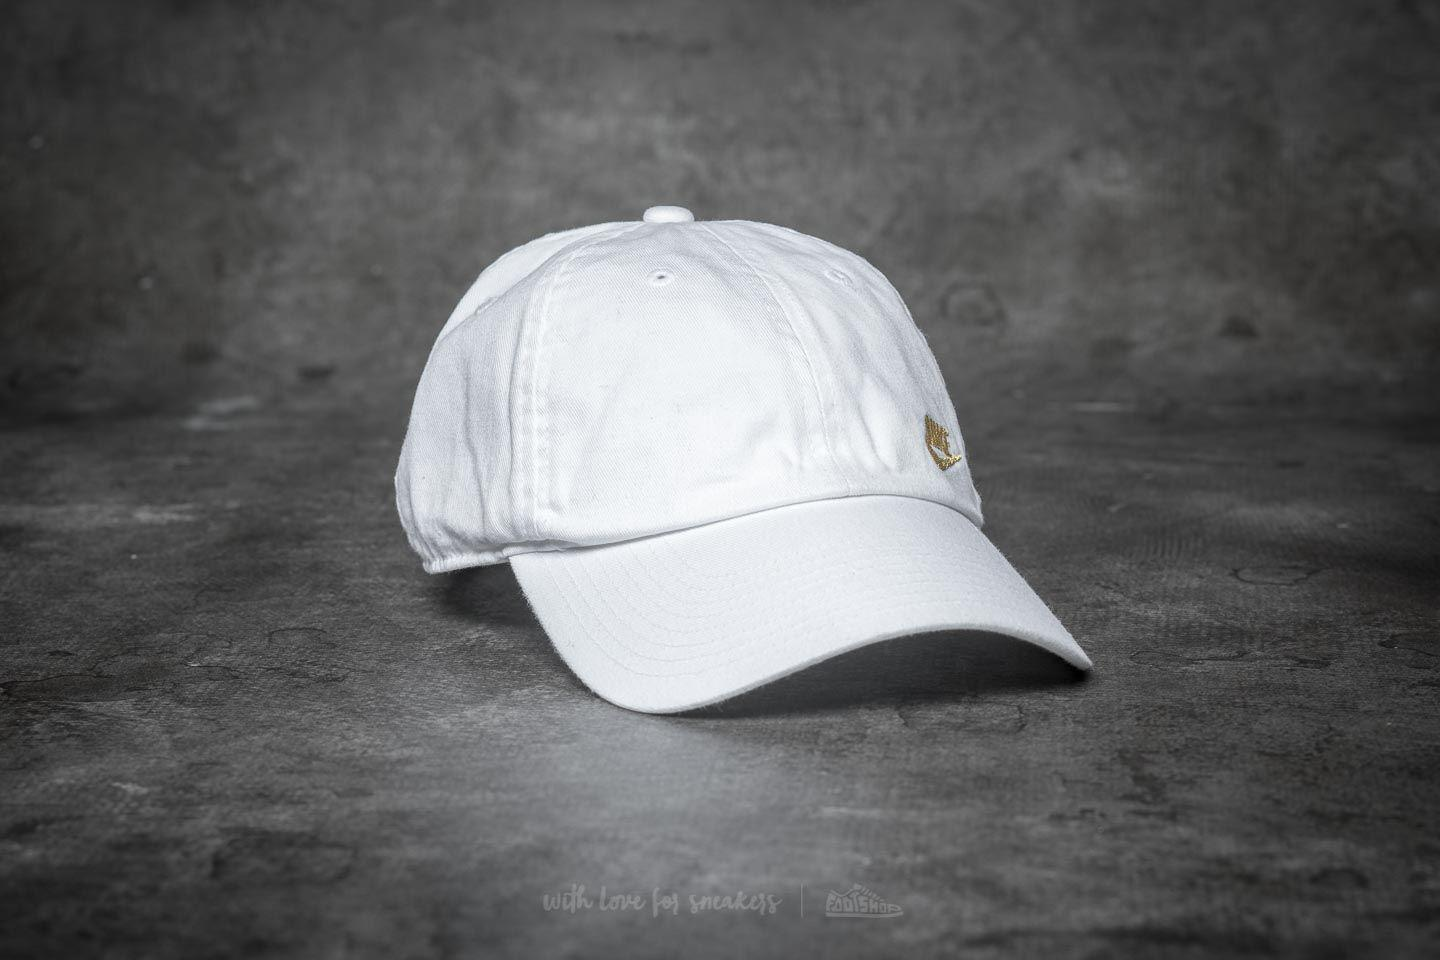 d0cc55800 usa white and gold nike hat 38875 95c73